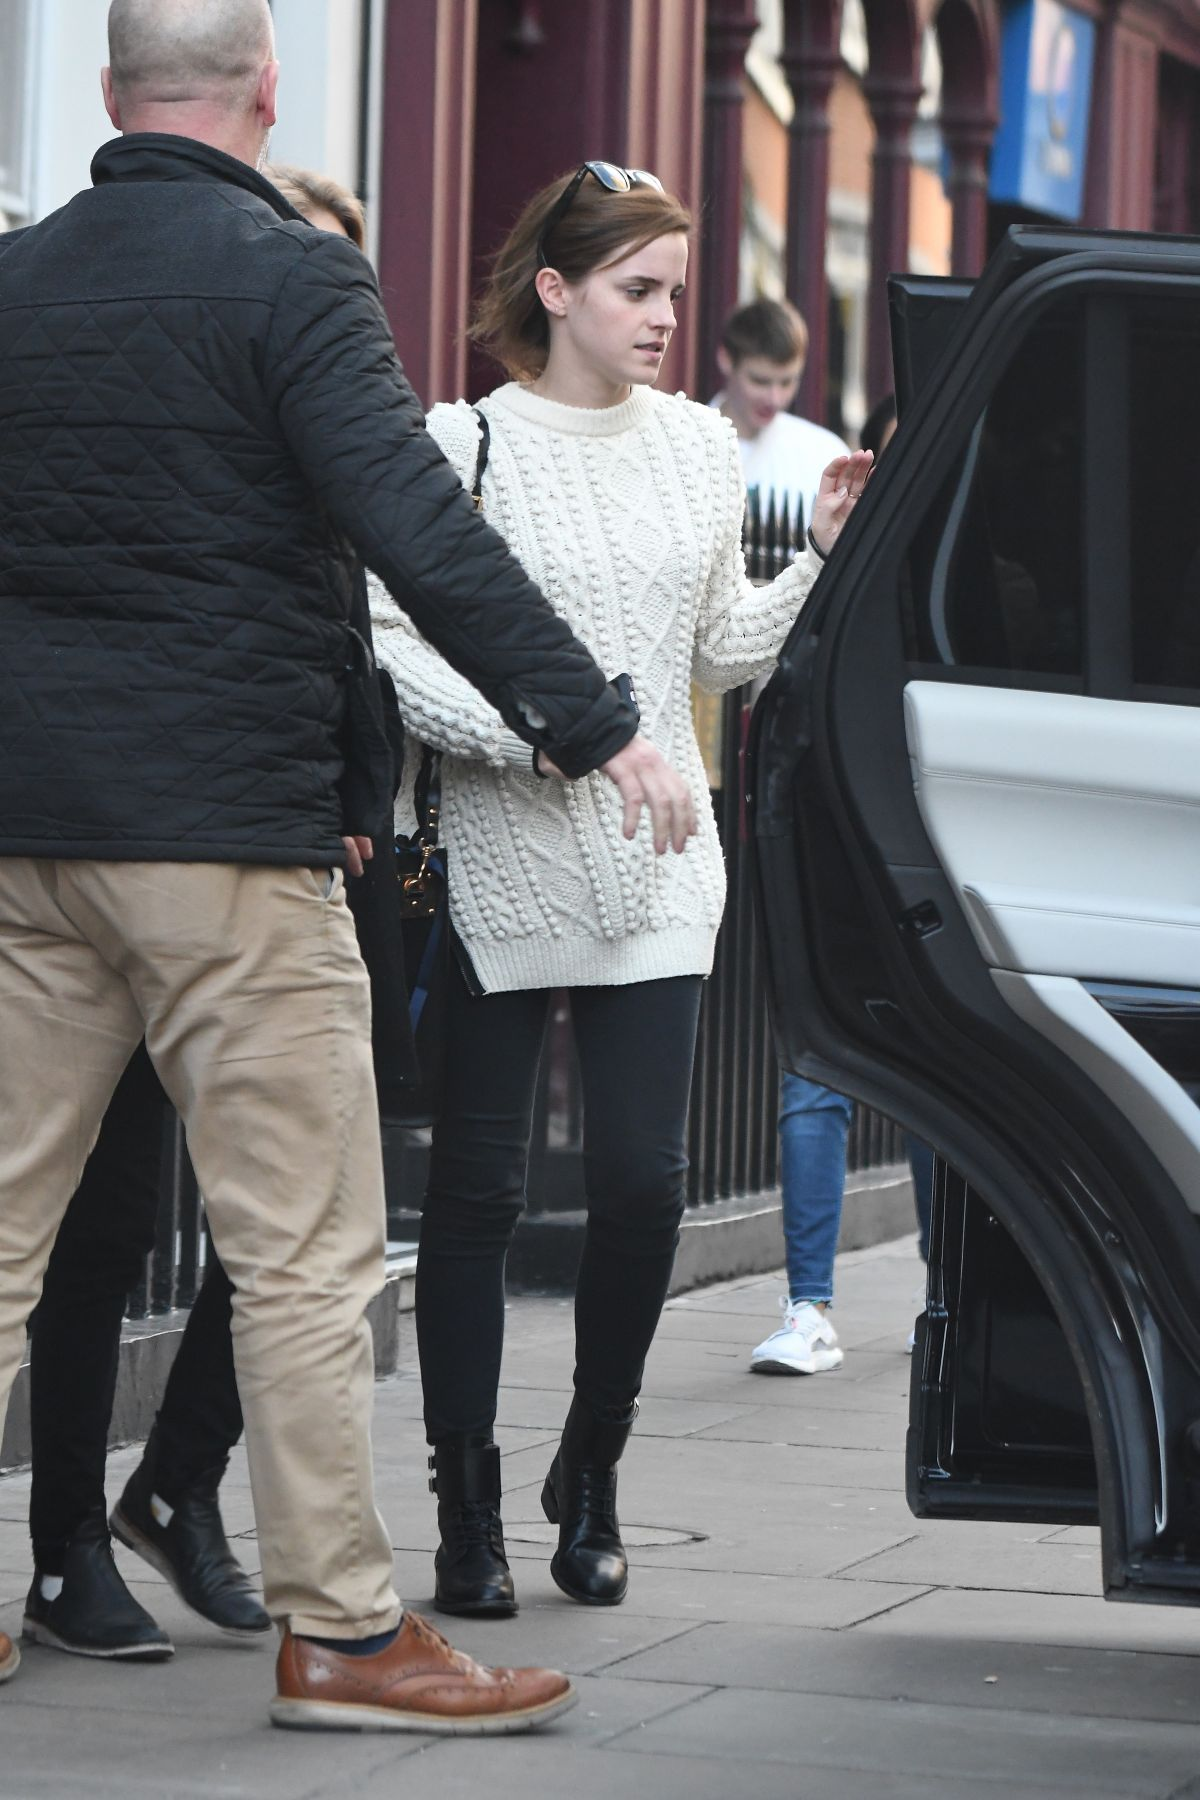 Emma Watson Spotted after having lunch with a friend in Soho in London, UK